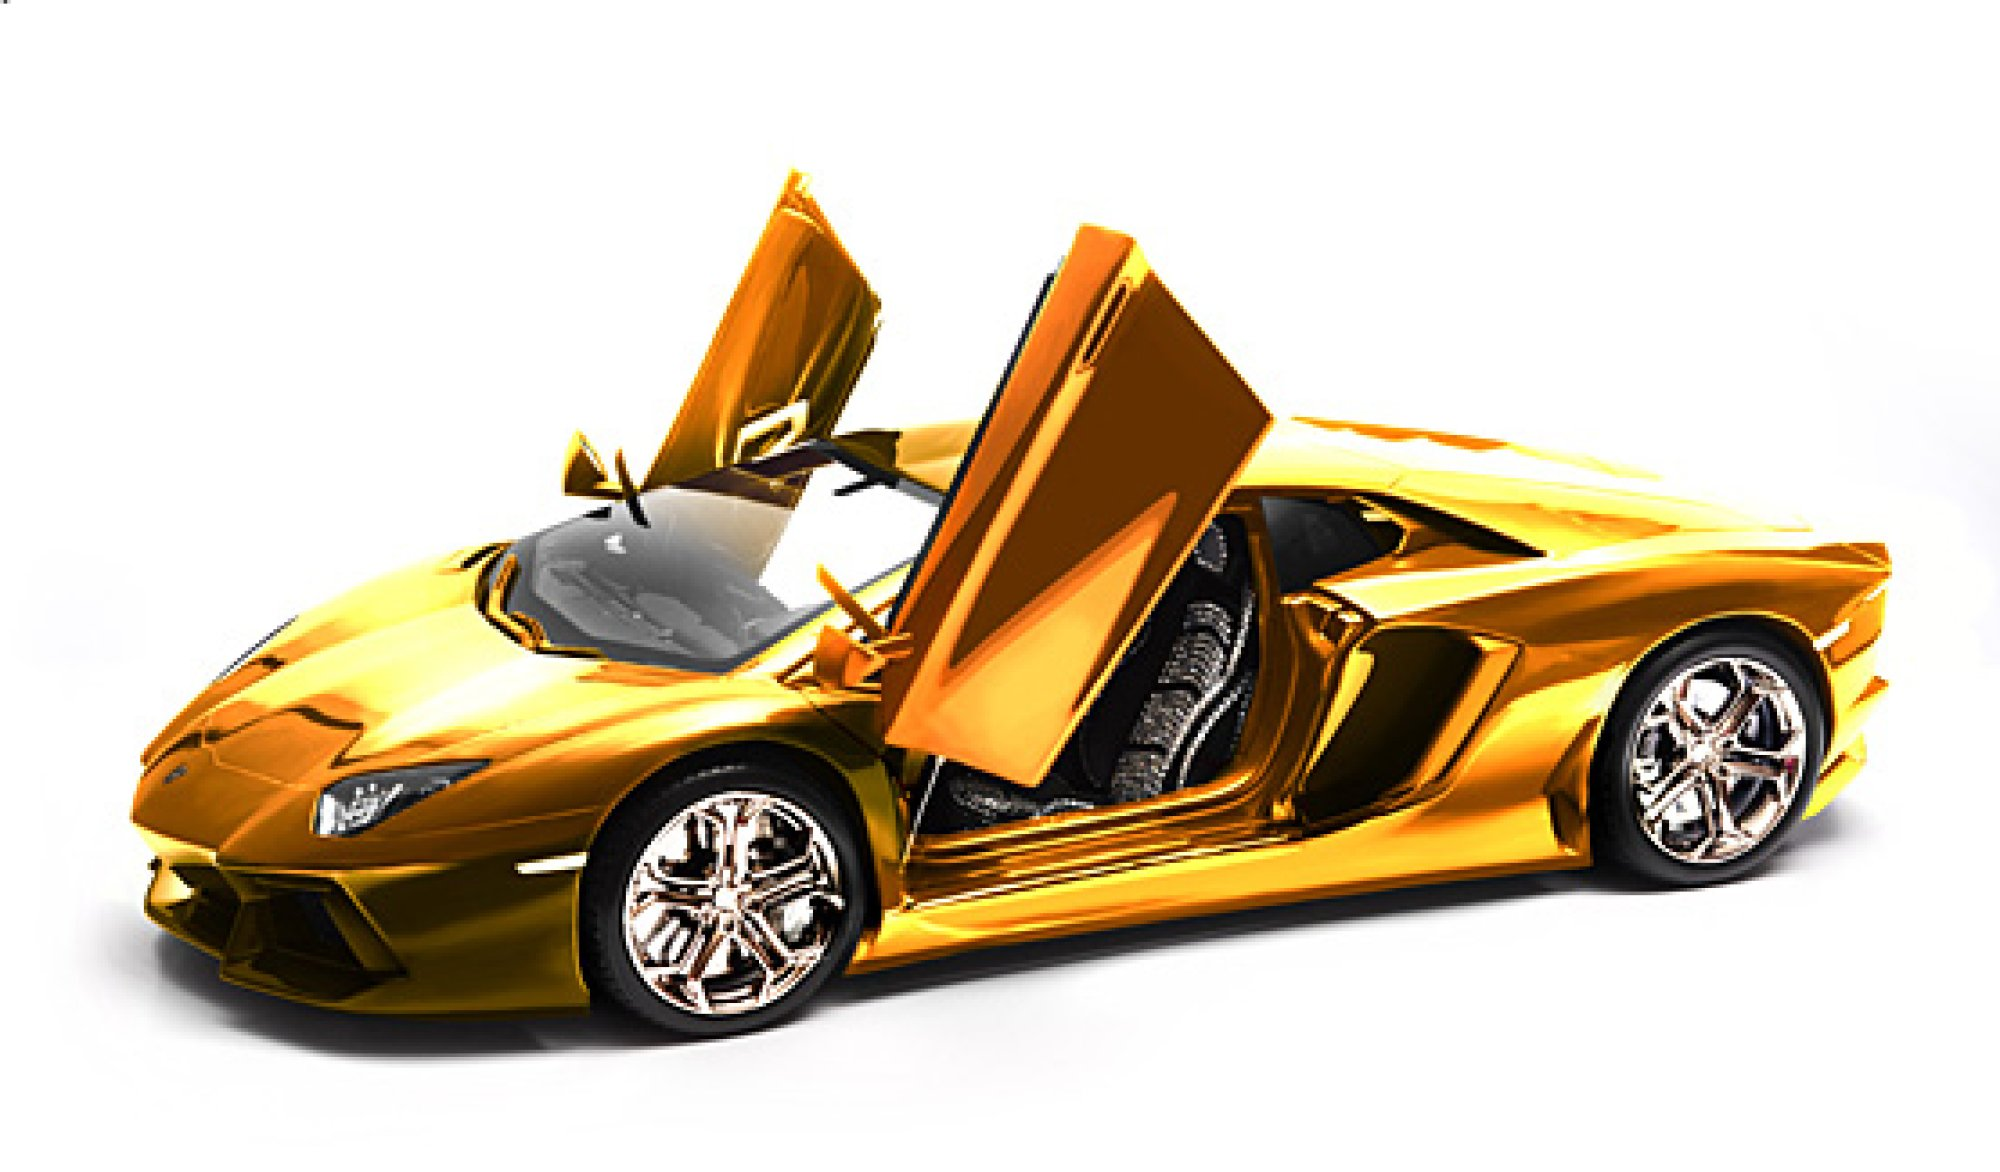 chrome gold car wallpaper - photo #6